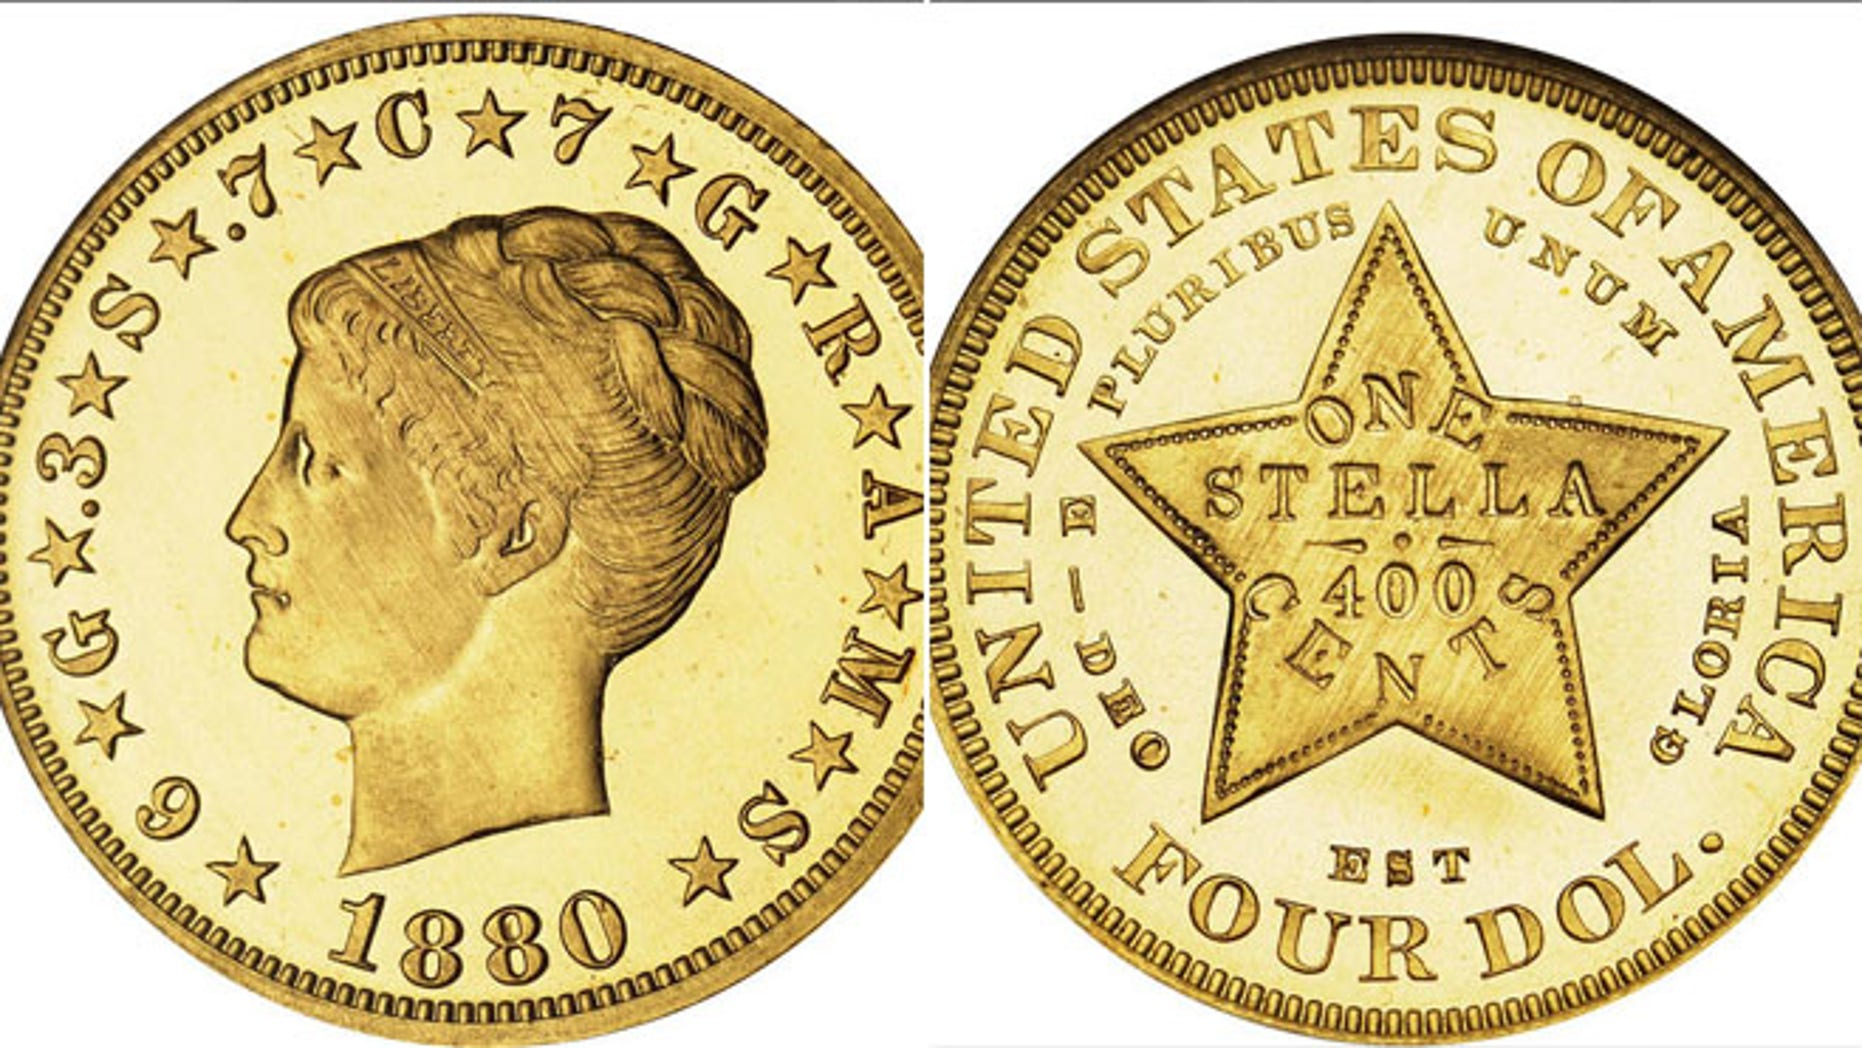 The 1880 Coiled Hair Stella, one of the very finest known, brought an astonishing $2,754,000.